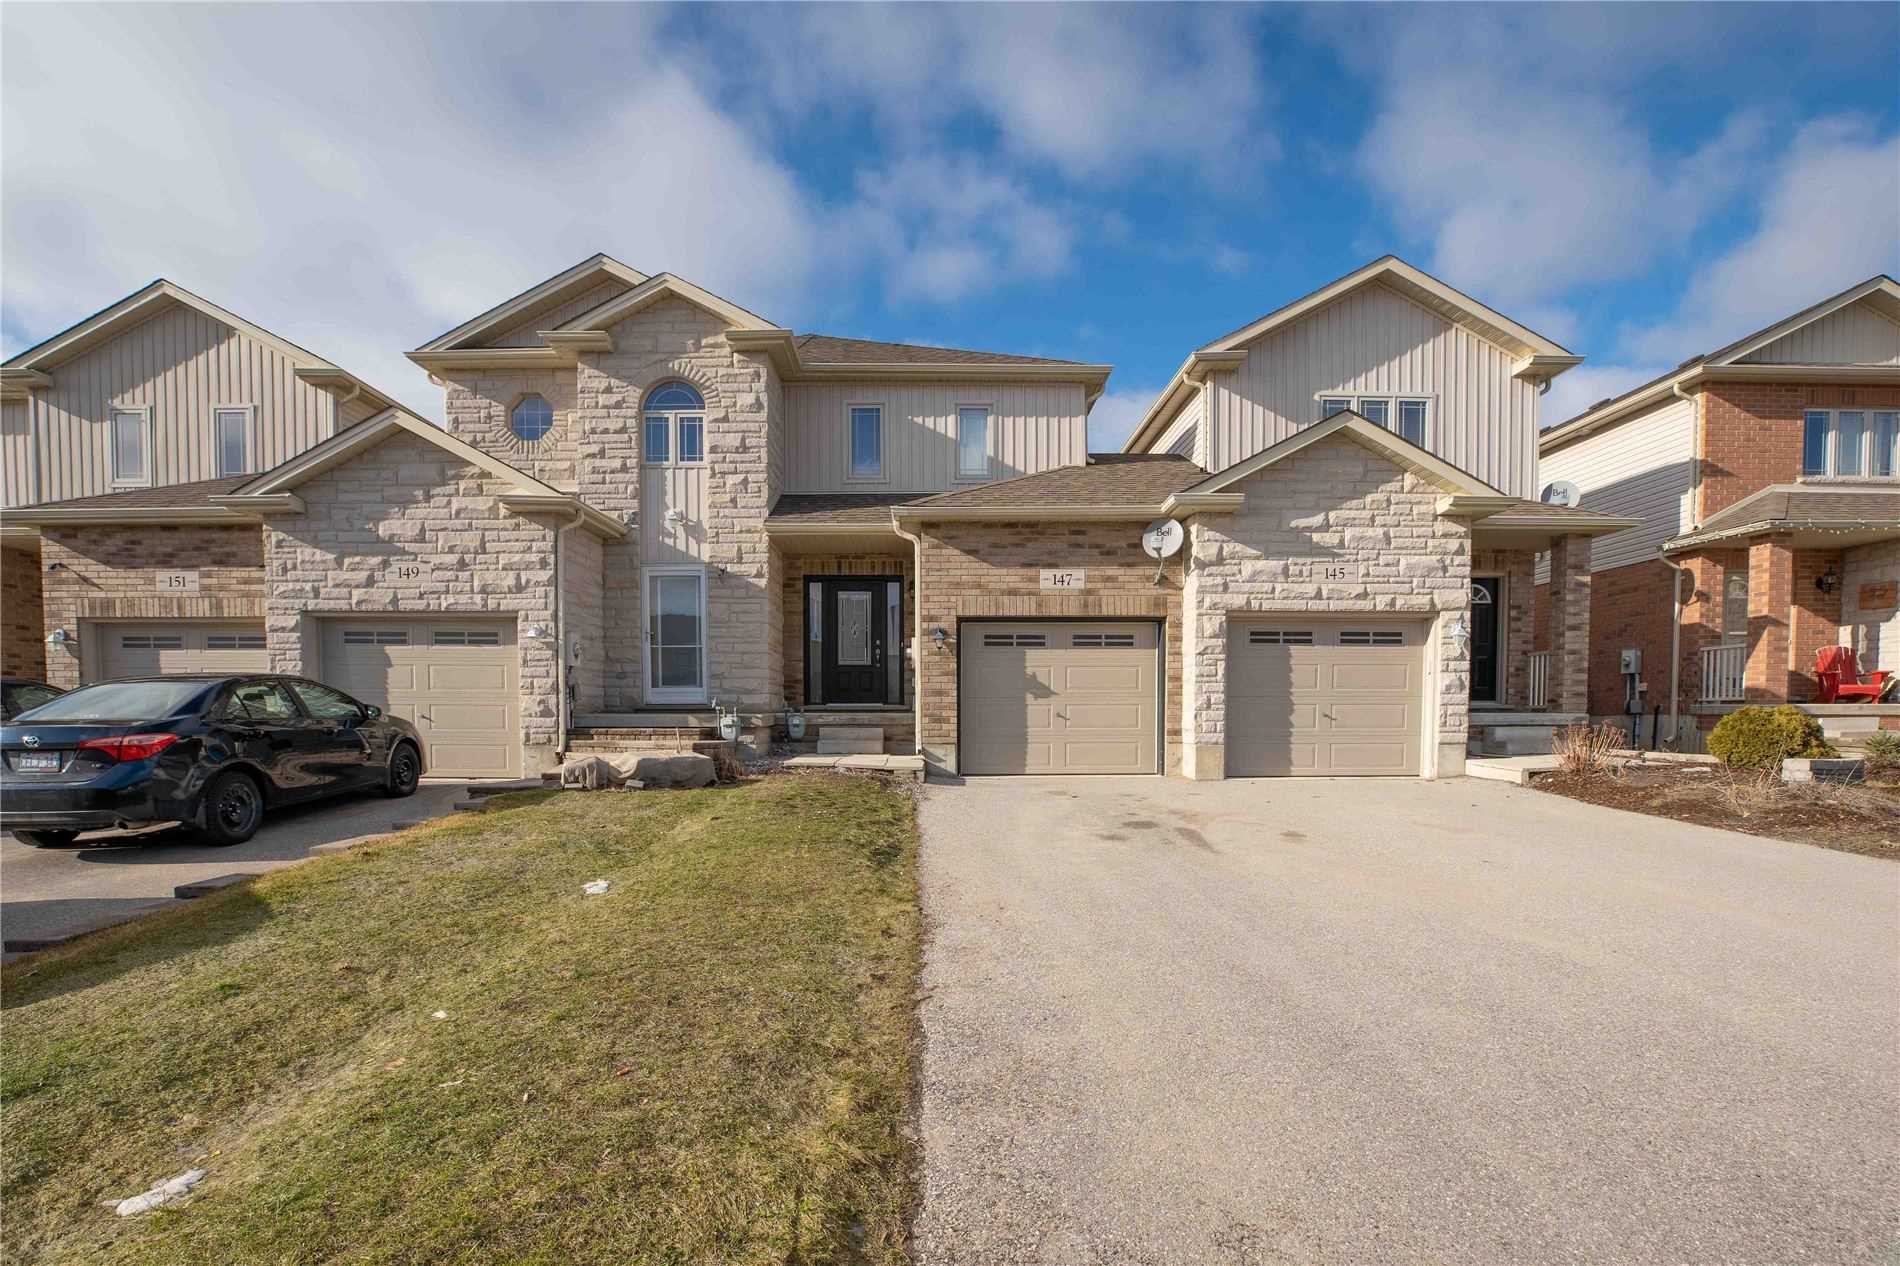 pictures of house for sale MLS: N4728124 located at 147 Banting Cres, Essa L0M1B6